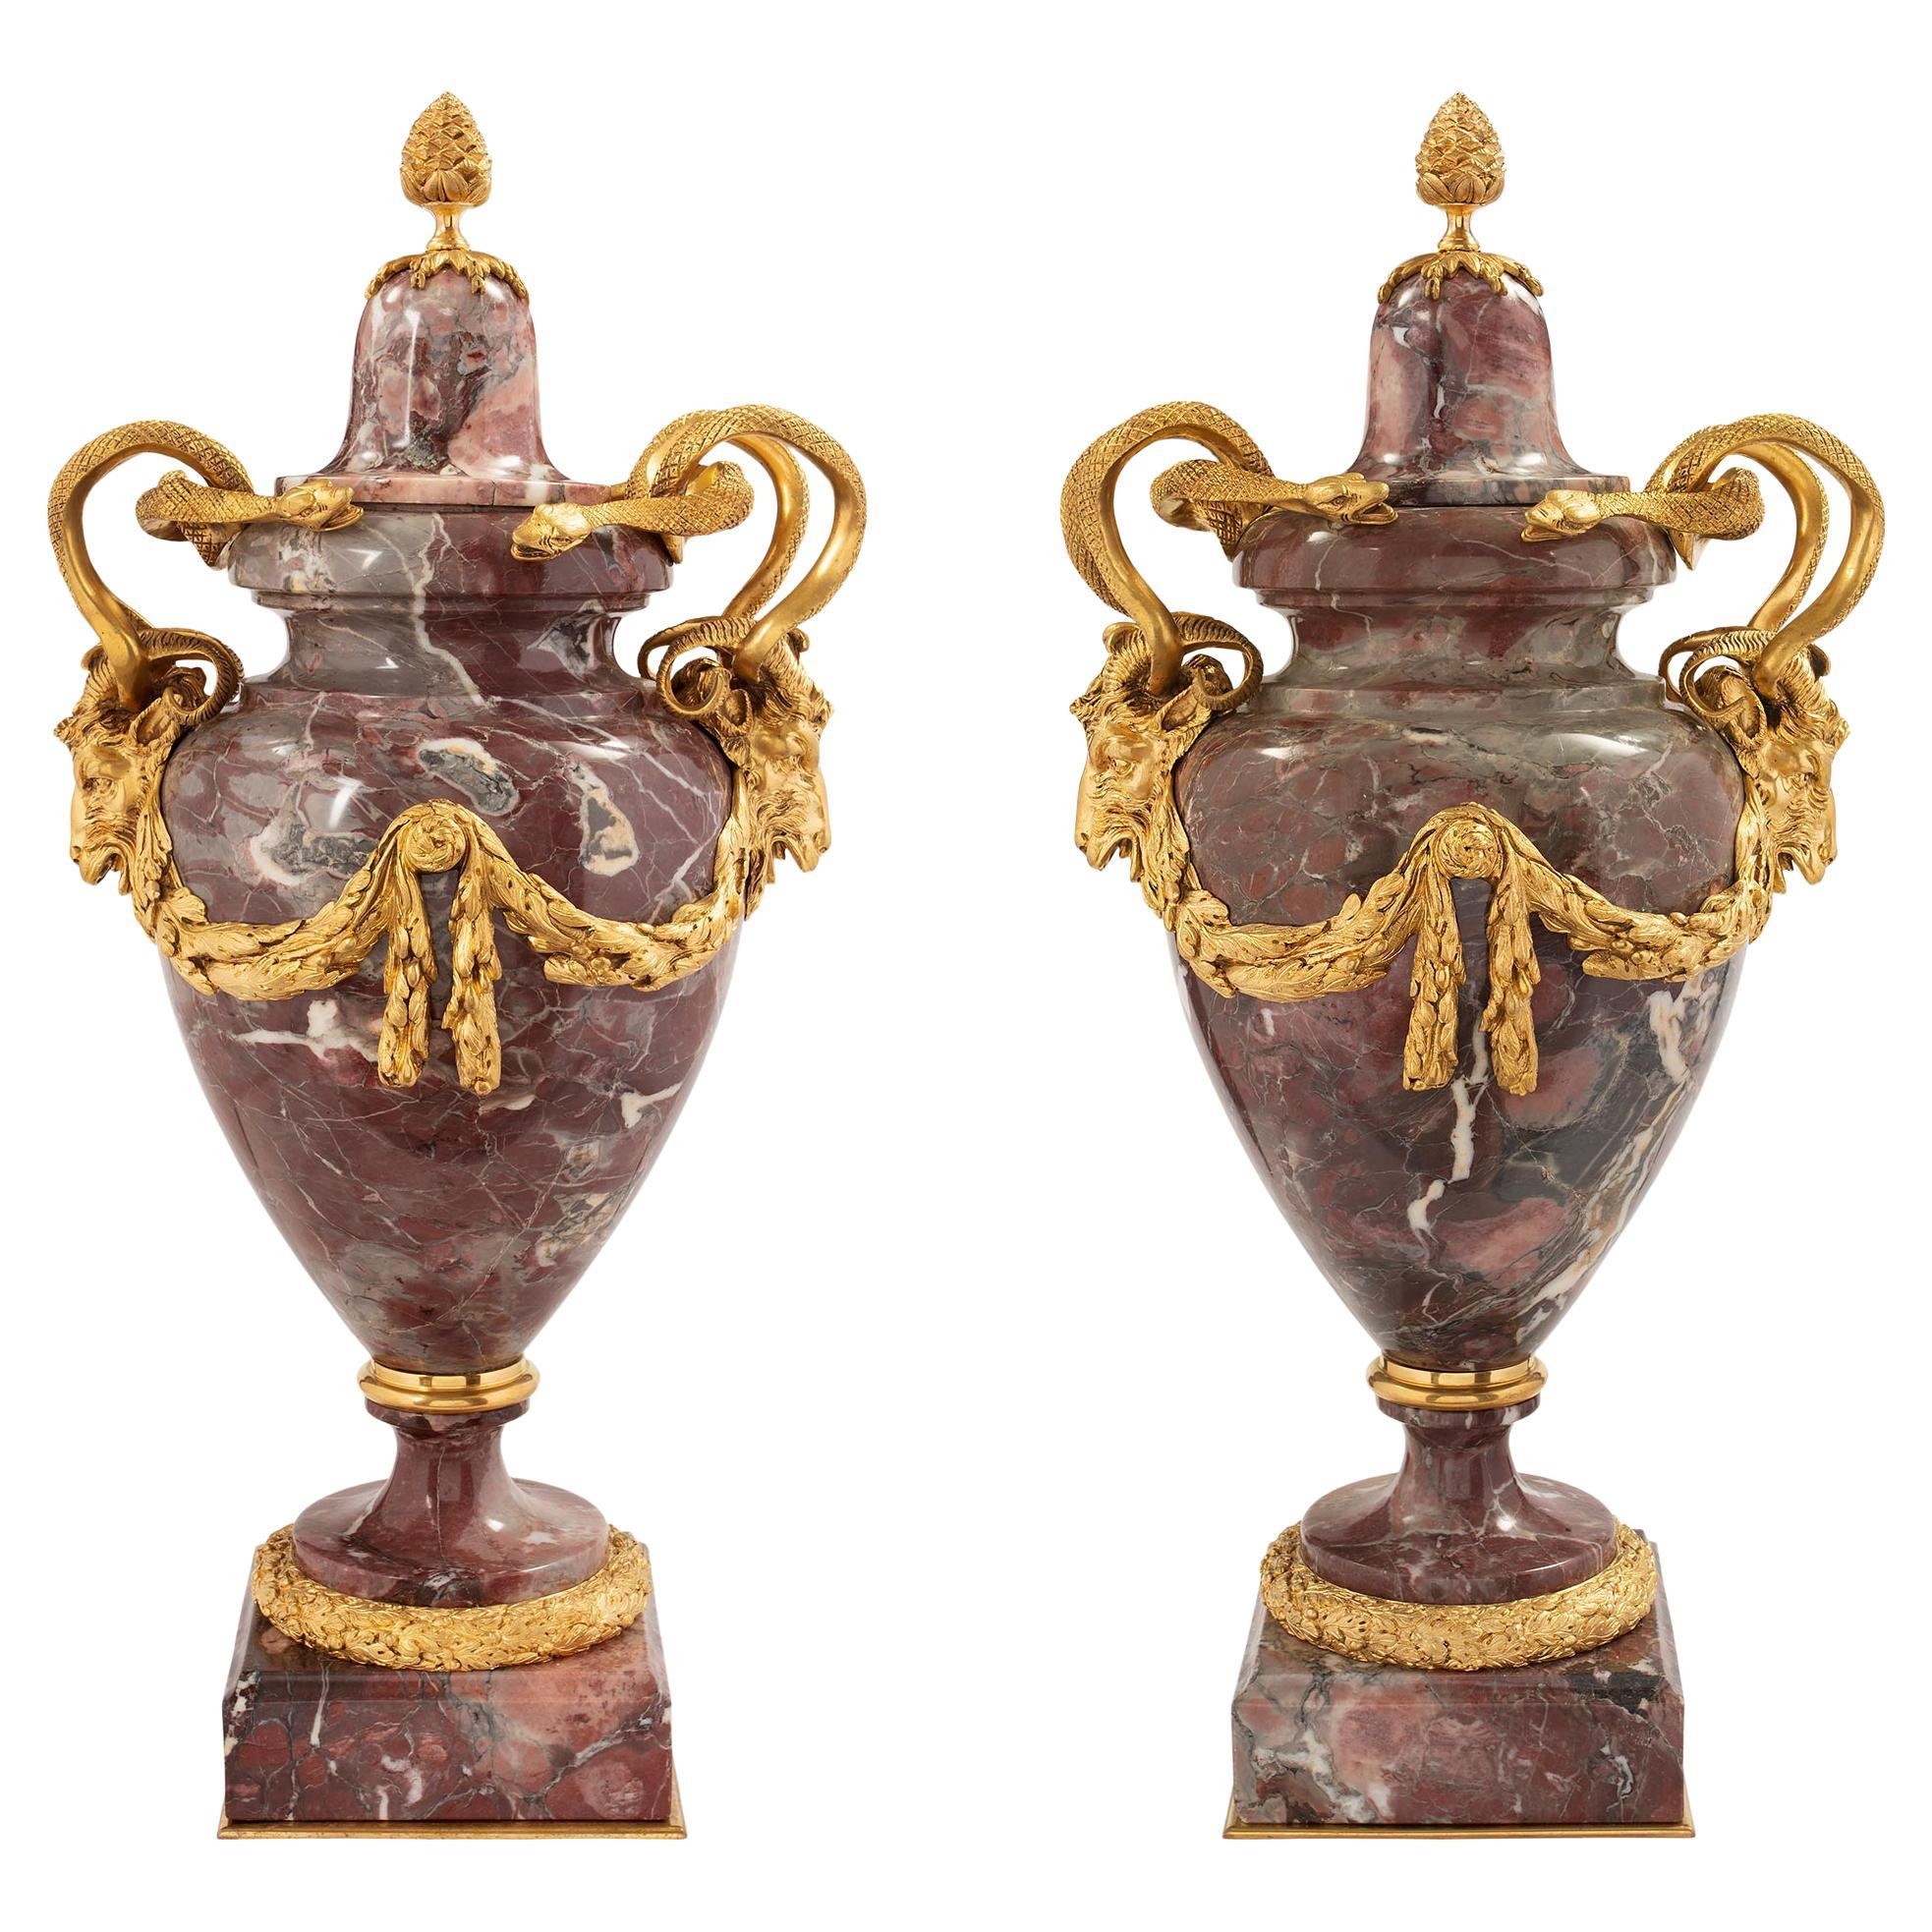 Pair of French Mid-19th Century Louis XVI Style Marble and Ormolu Lidded Urns